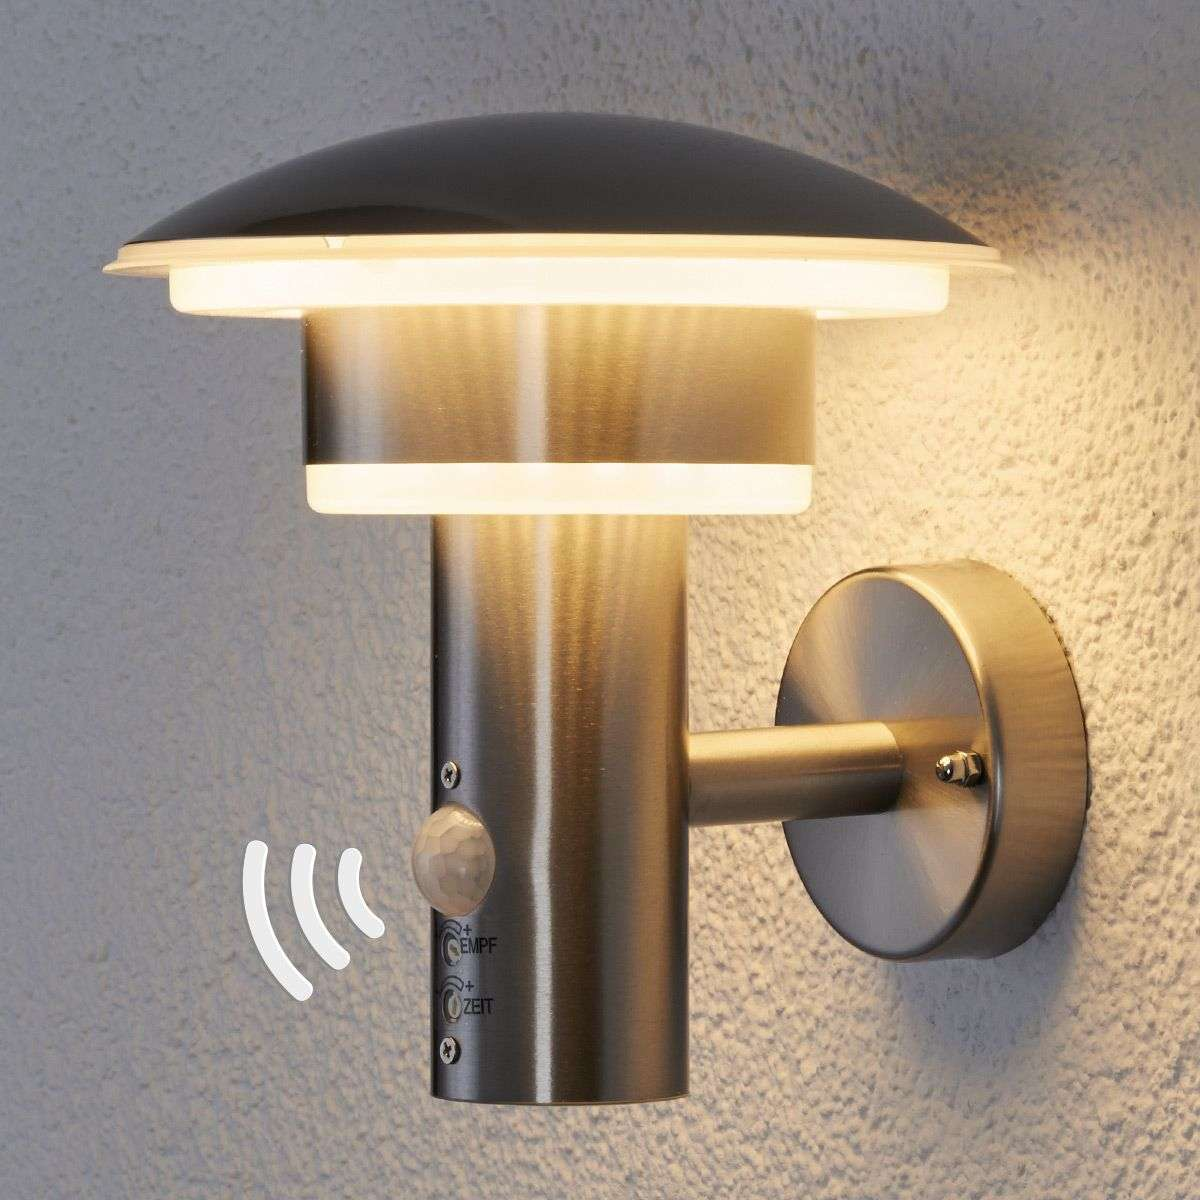 Pir outdoor wall light lillie with leds lights pir outdoor wall light lillie with leds mozeypictures